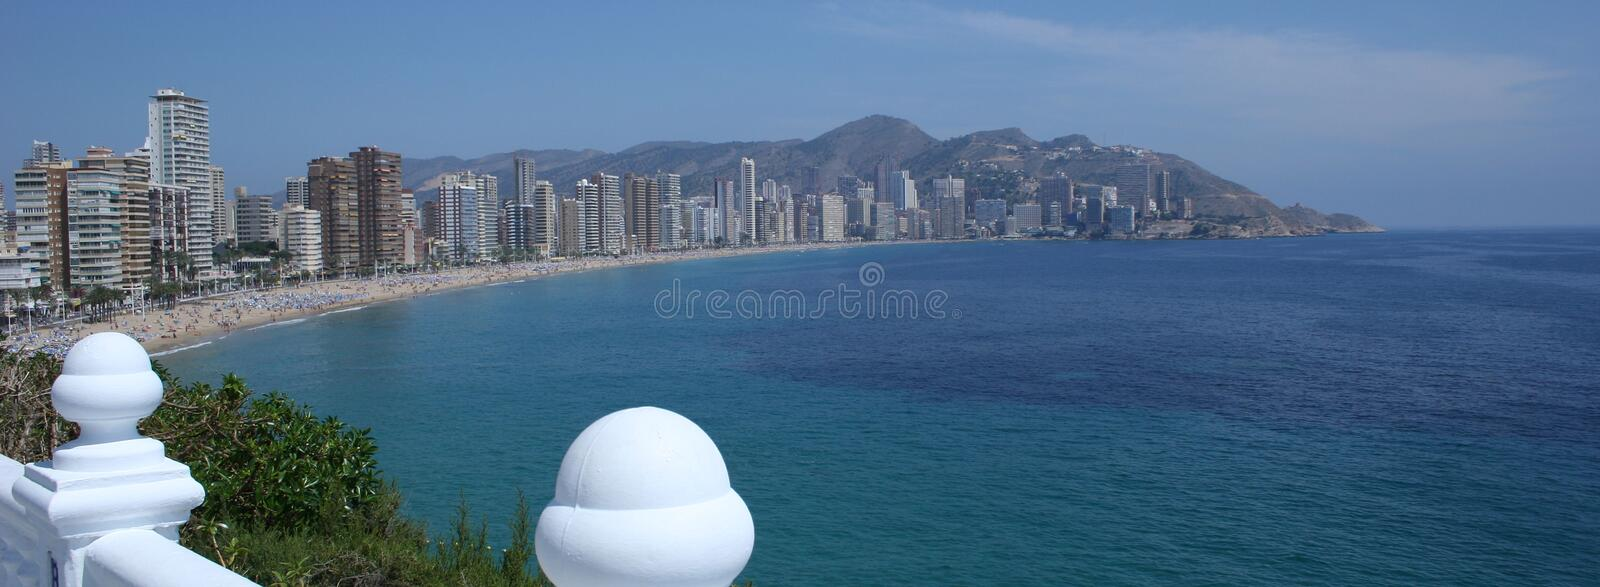 Benidorm Sea Front royalty free stock photography